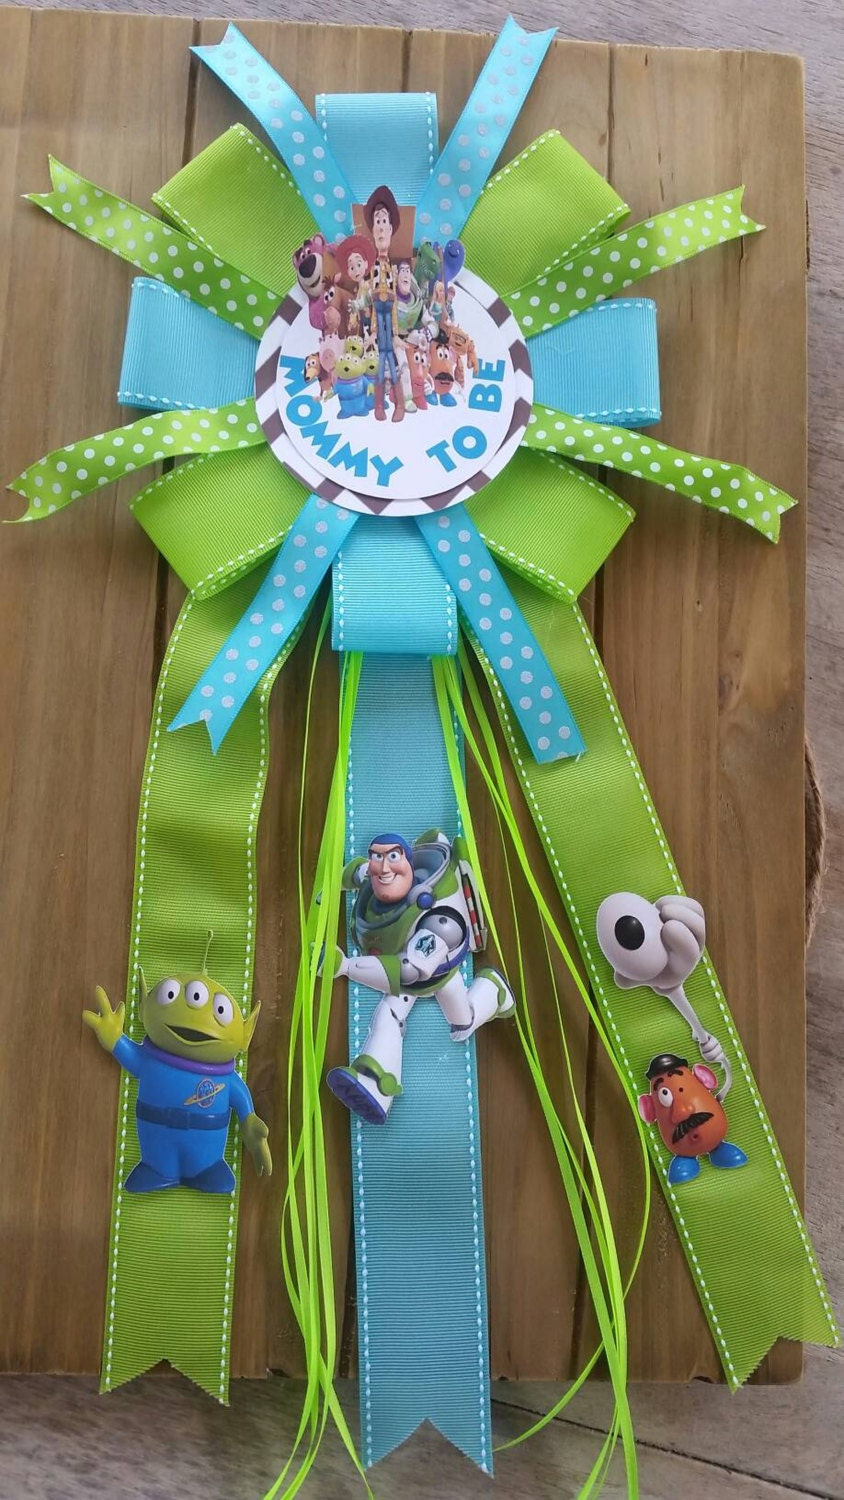 toy story baby shower corsage mommy to be by silviaspartydecor